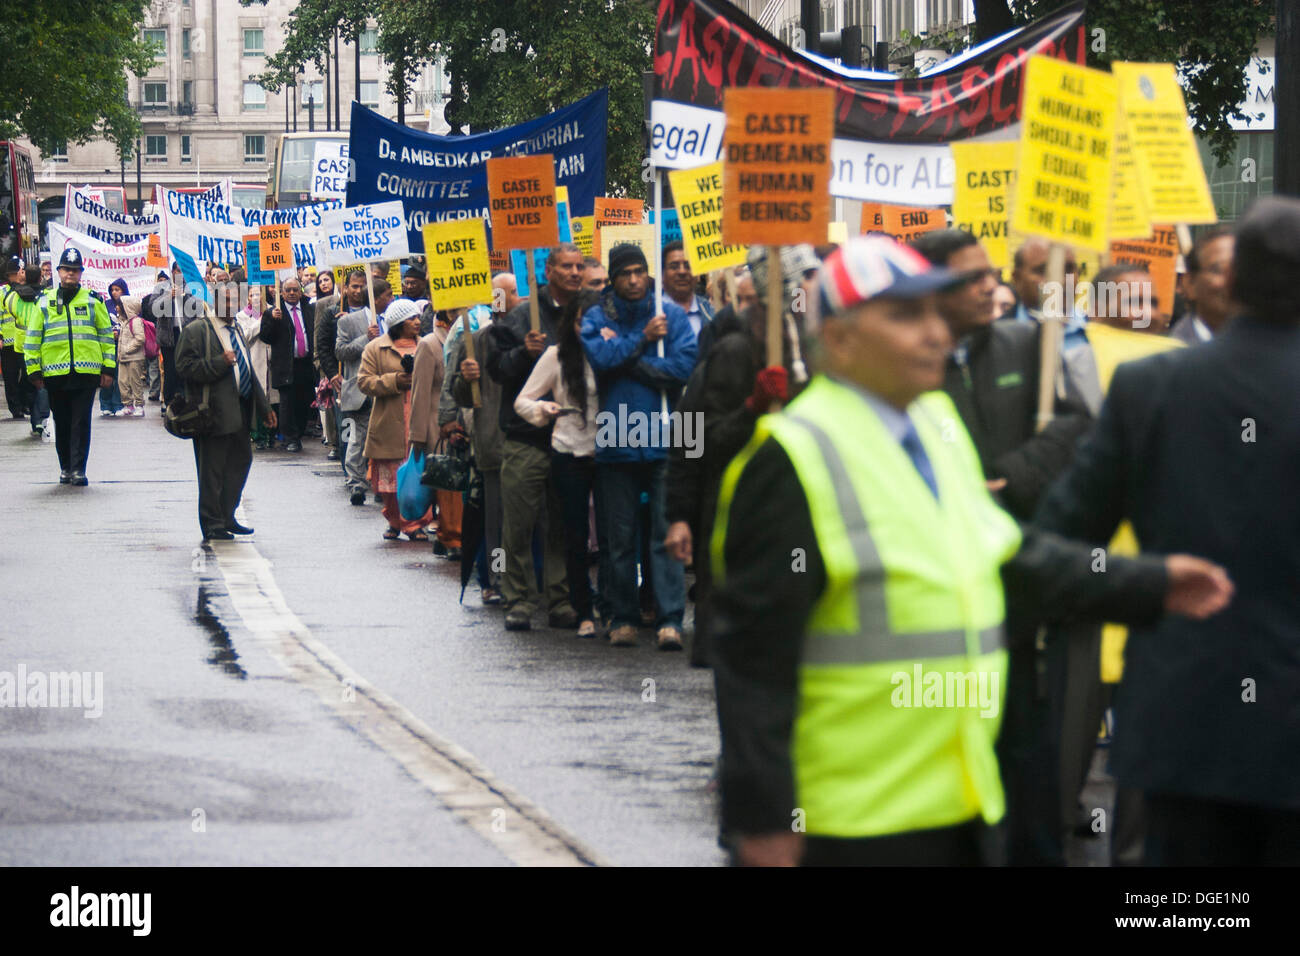 London, UK. 19th October 2013. Caste Watch UK demonstrates against the Indian caste system that denies equal opportunities for all. Credit:  Paul Davey/Alamy Live News - Stock Image